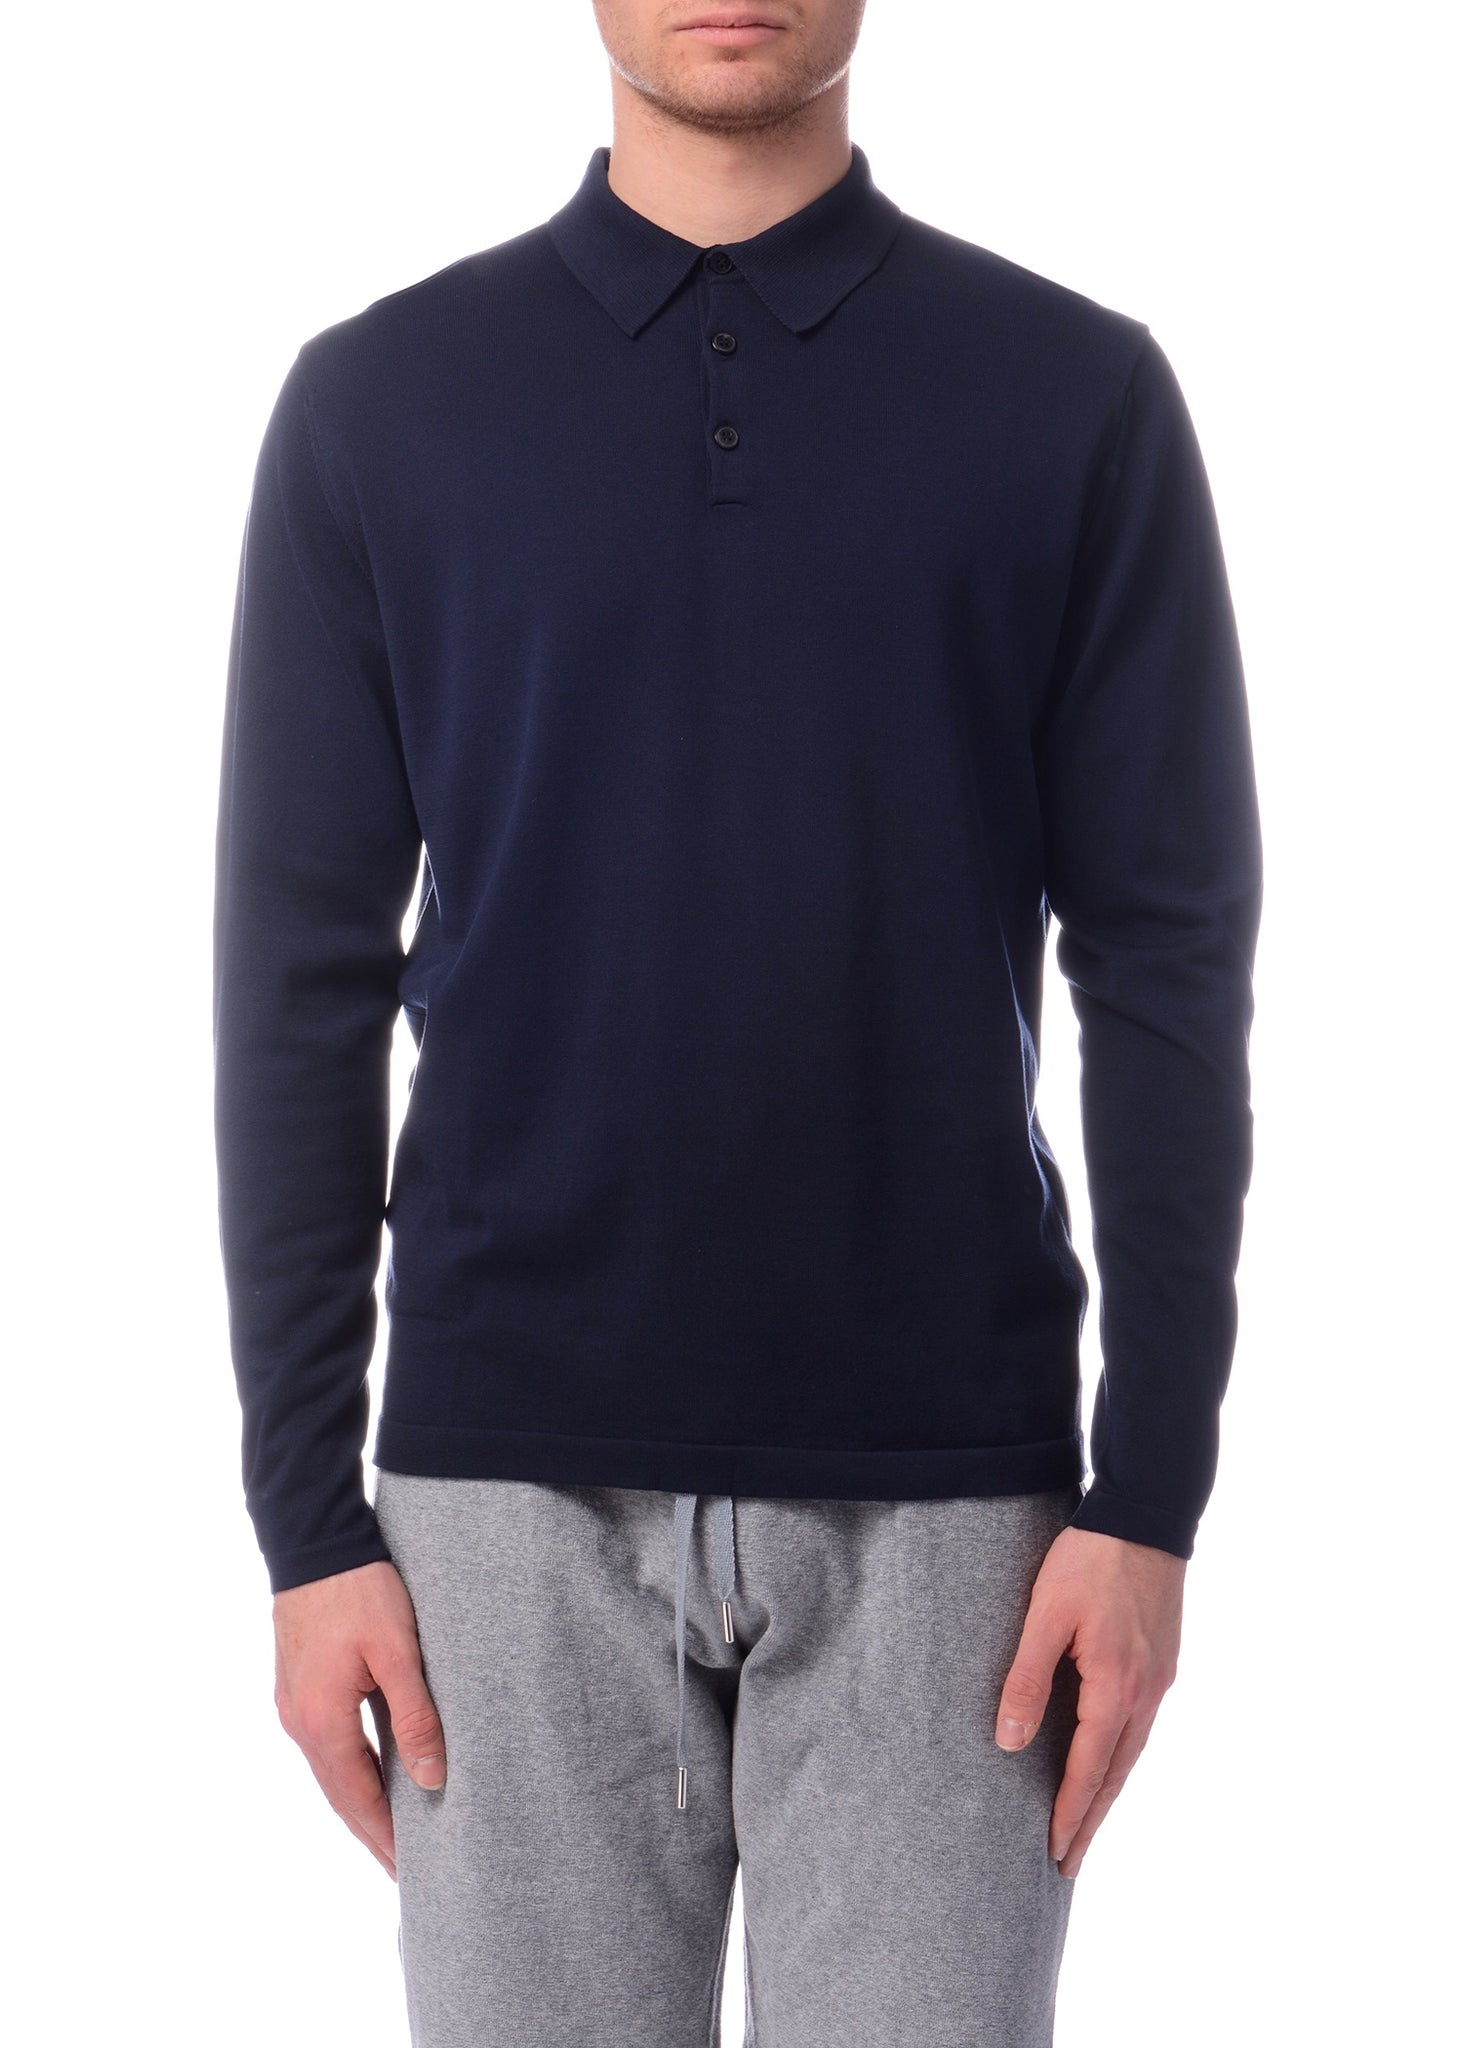 Polo Manches Longues en Maille Marine|Navy Long Sleeve Knitted Polo Shirt